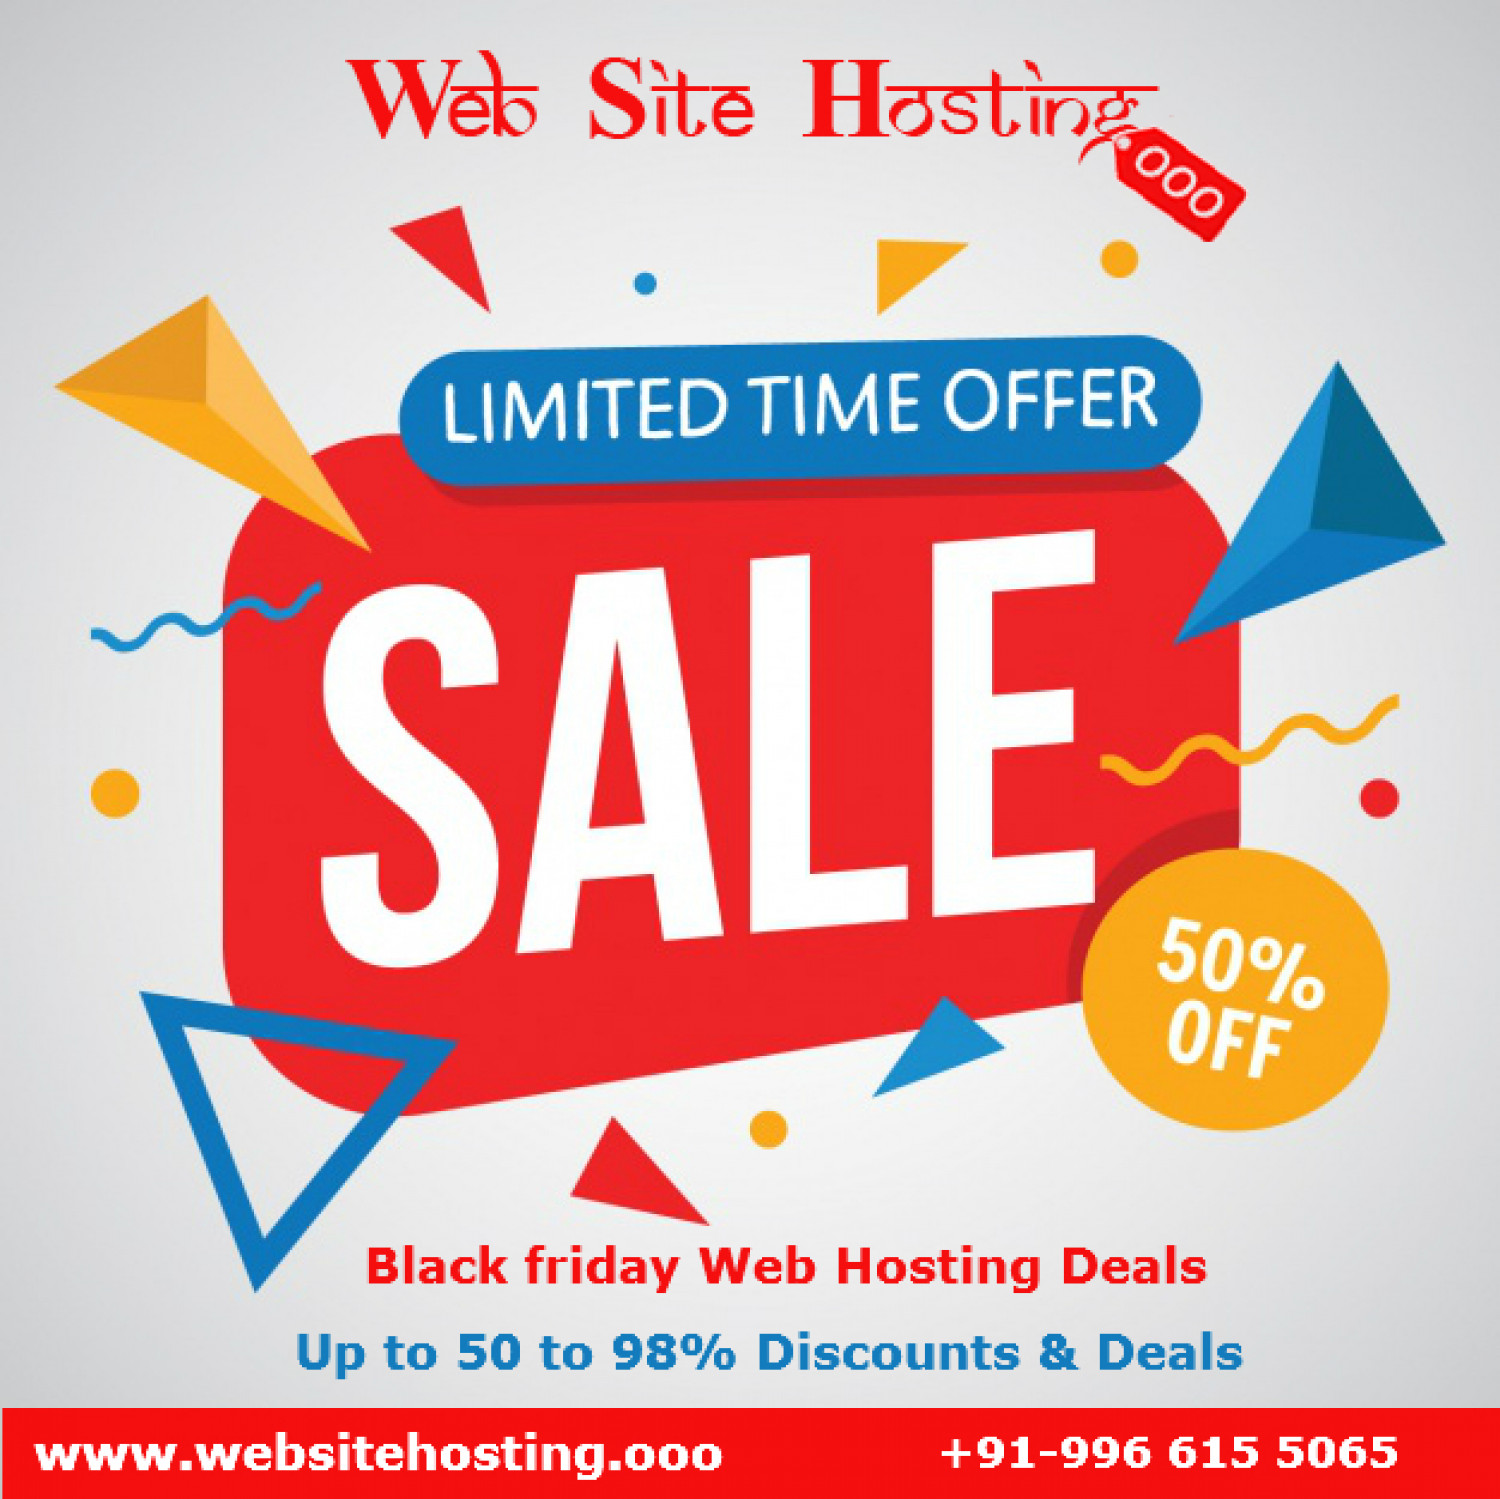 Top 10+ Black Friday Web Hosting Deals in 2017 Infographic